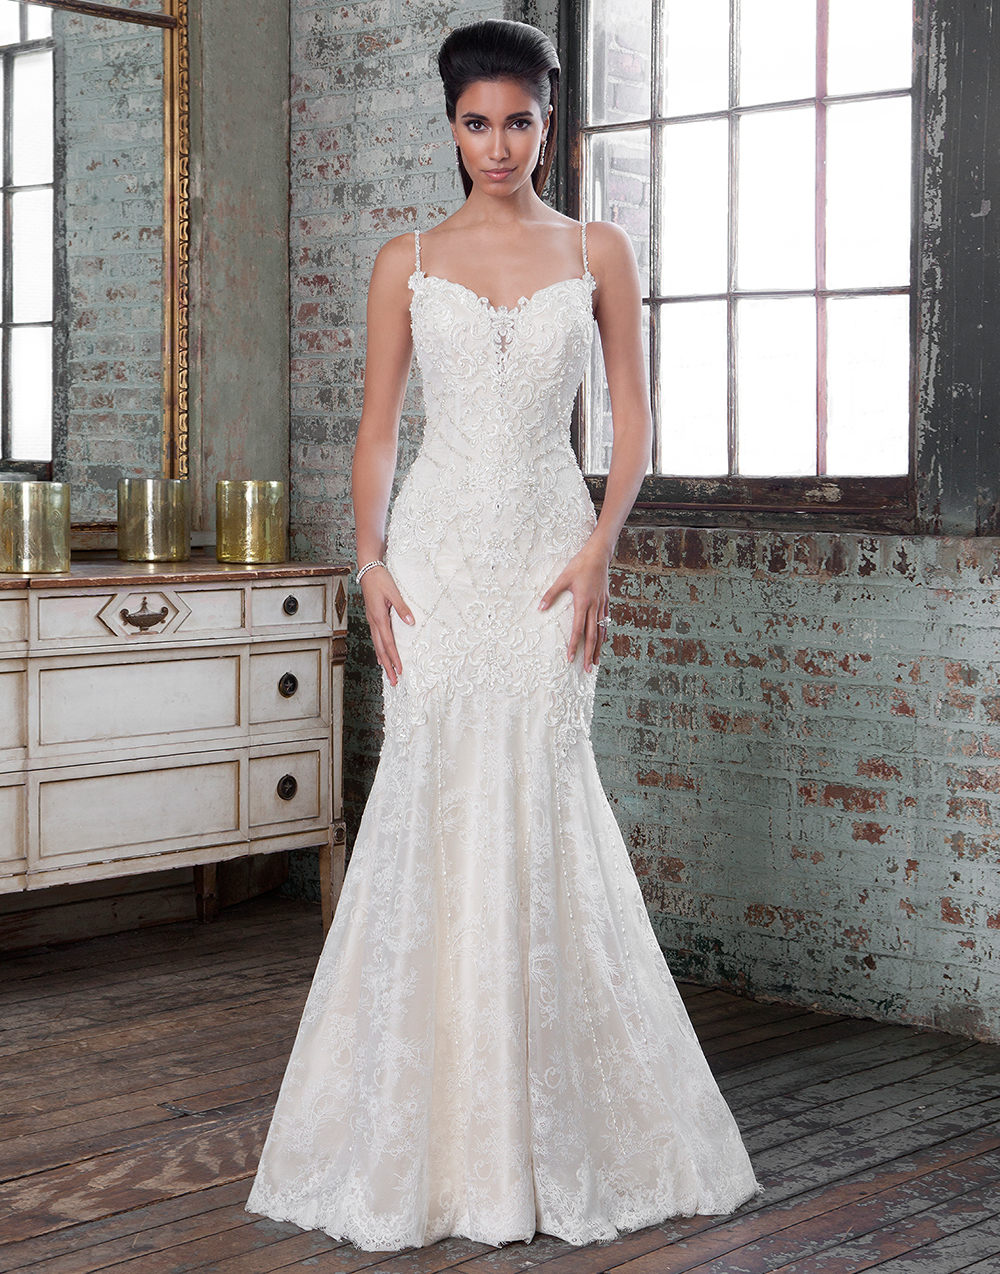 Wedding Gowns Archives ⋆ Page 19 of 34 ⋆ Precious Memories Bridal Shop